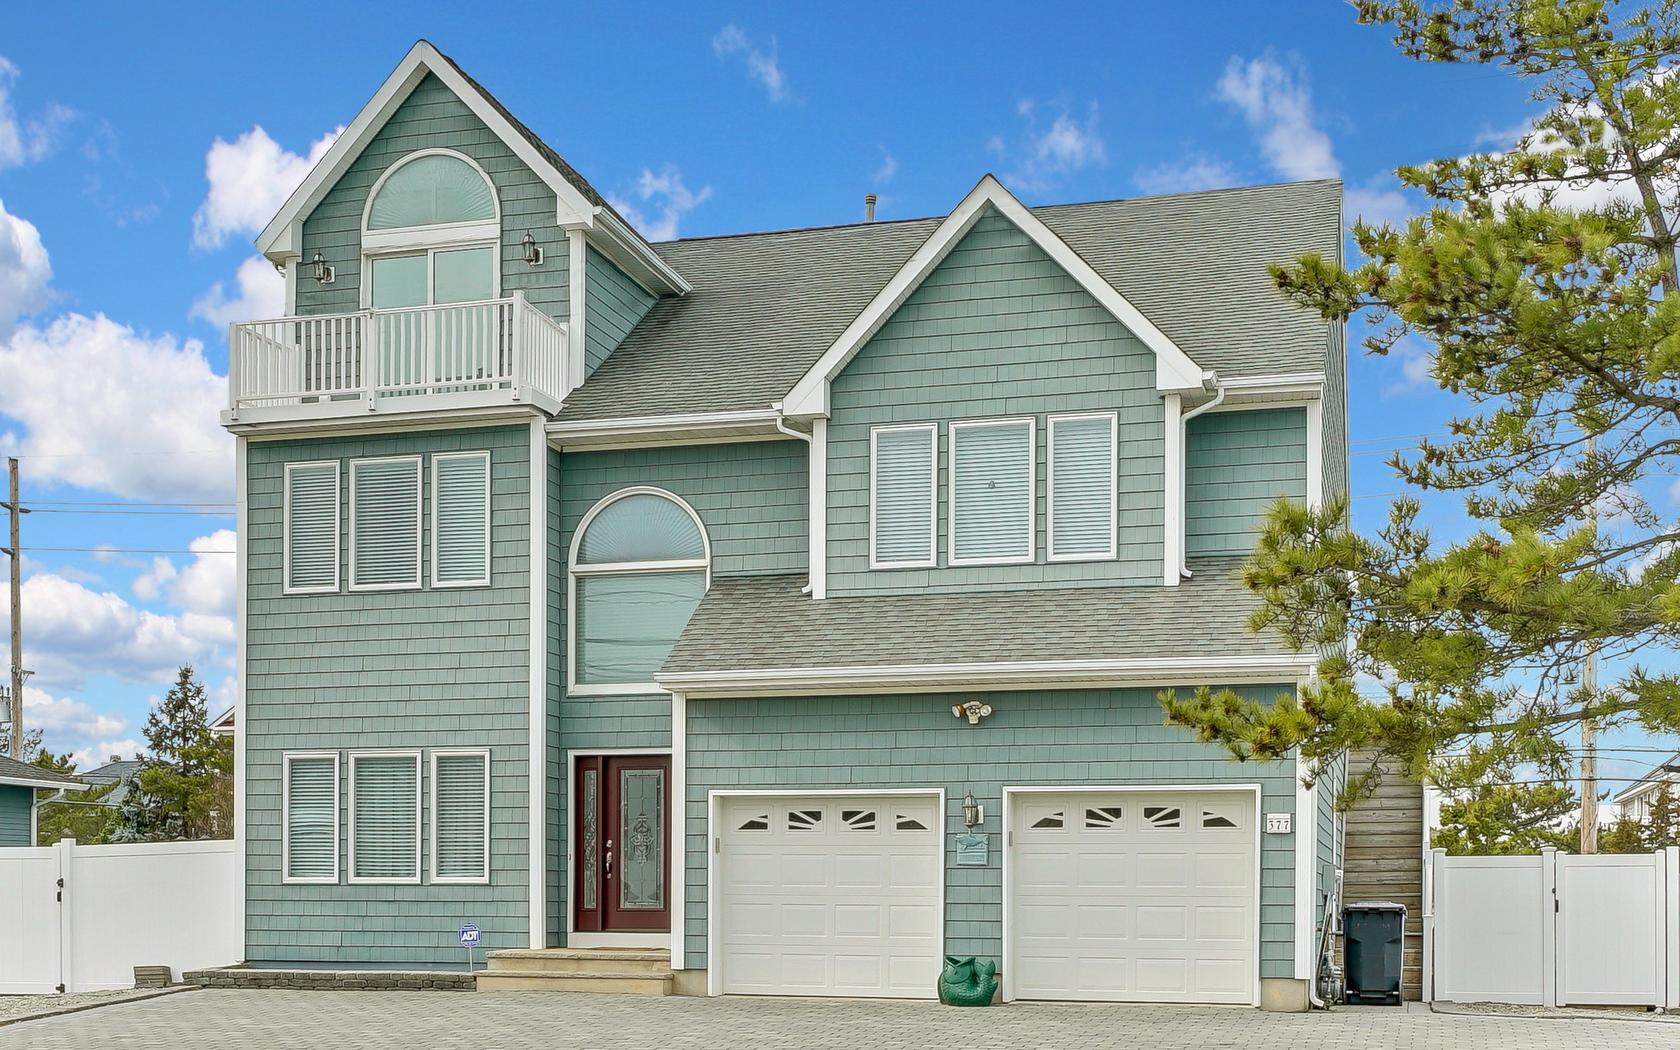 Single Family Home for Sale at Osprey Dunes Beach Association! 377 Route 35 Brick, New Jersey 08738 United States